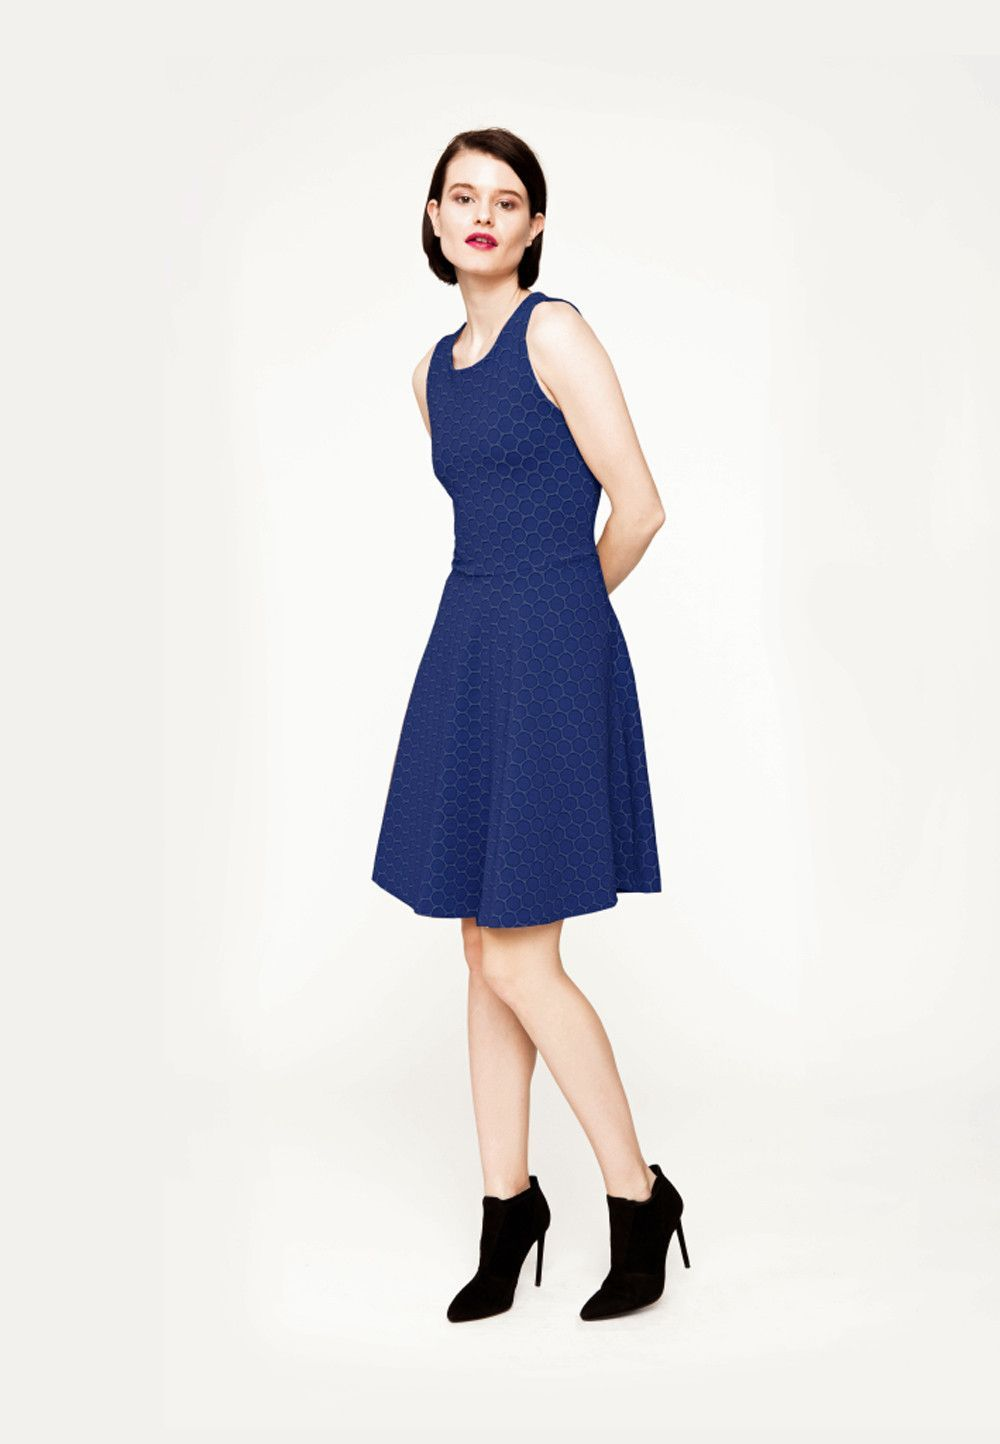 Ava Dress in Evening Blue Cameo